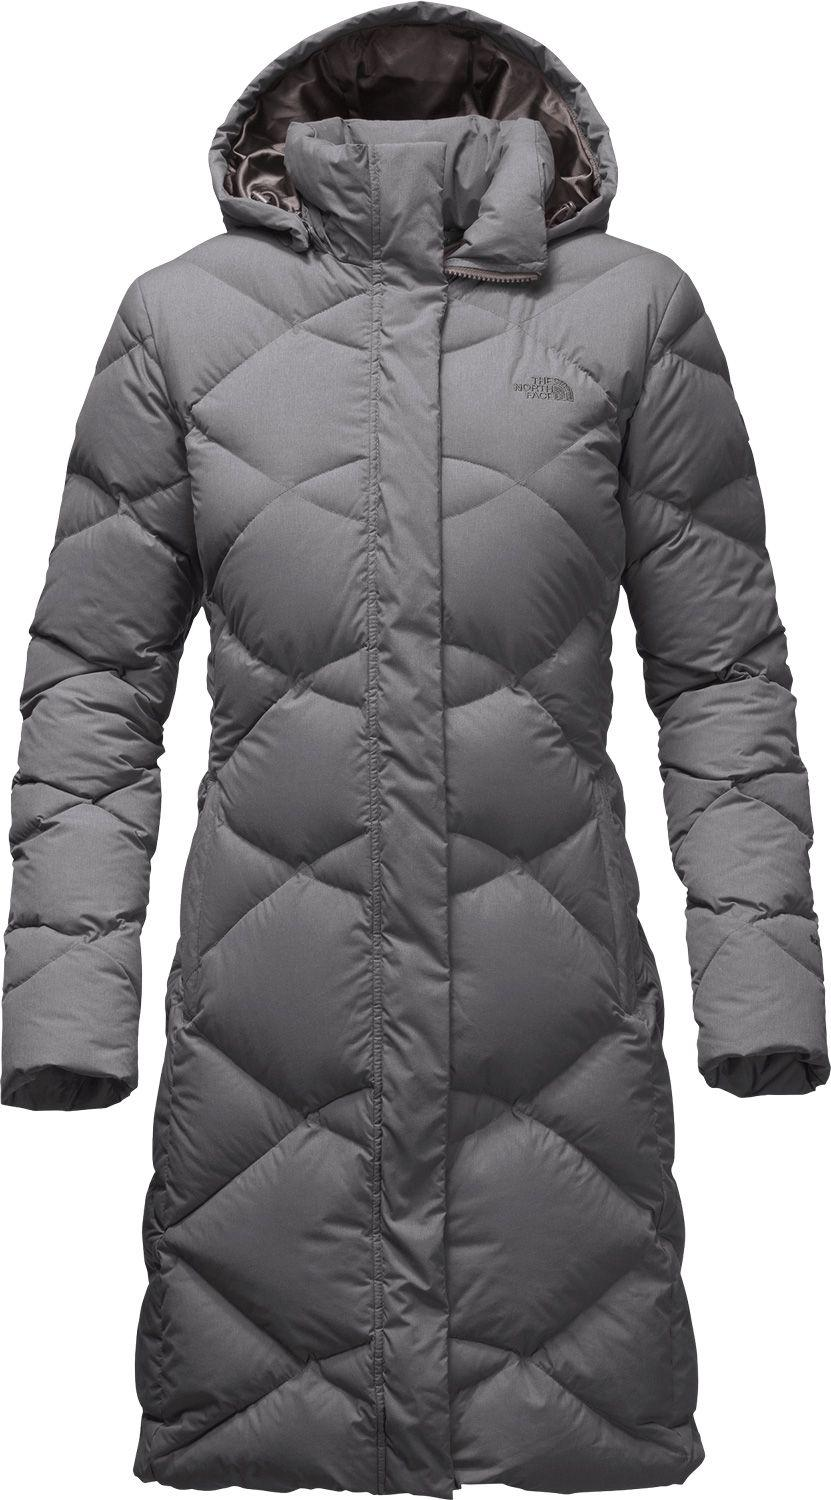 1d0d50f30e Lyst - The North Face Miss Metro Down Jacket in Gray